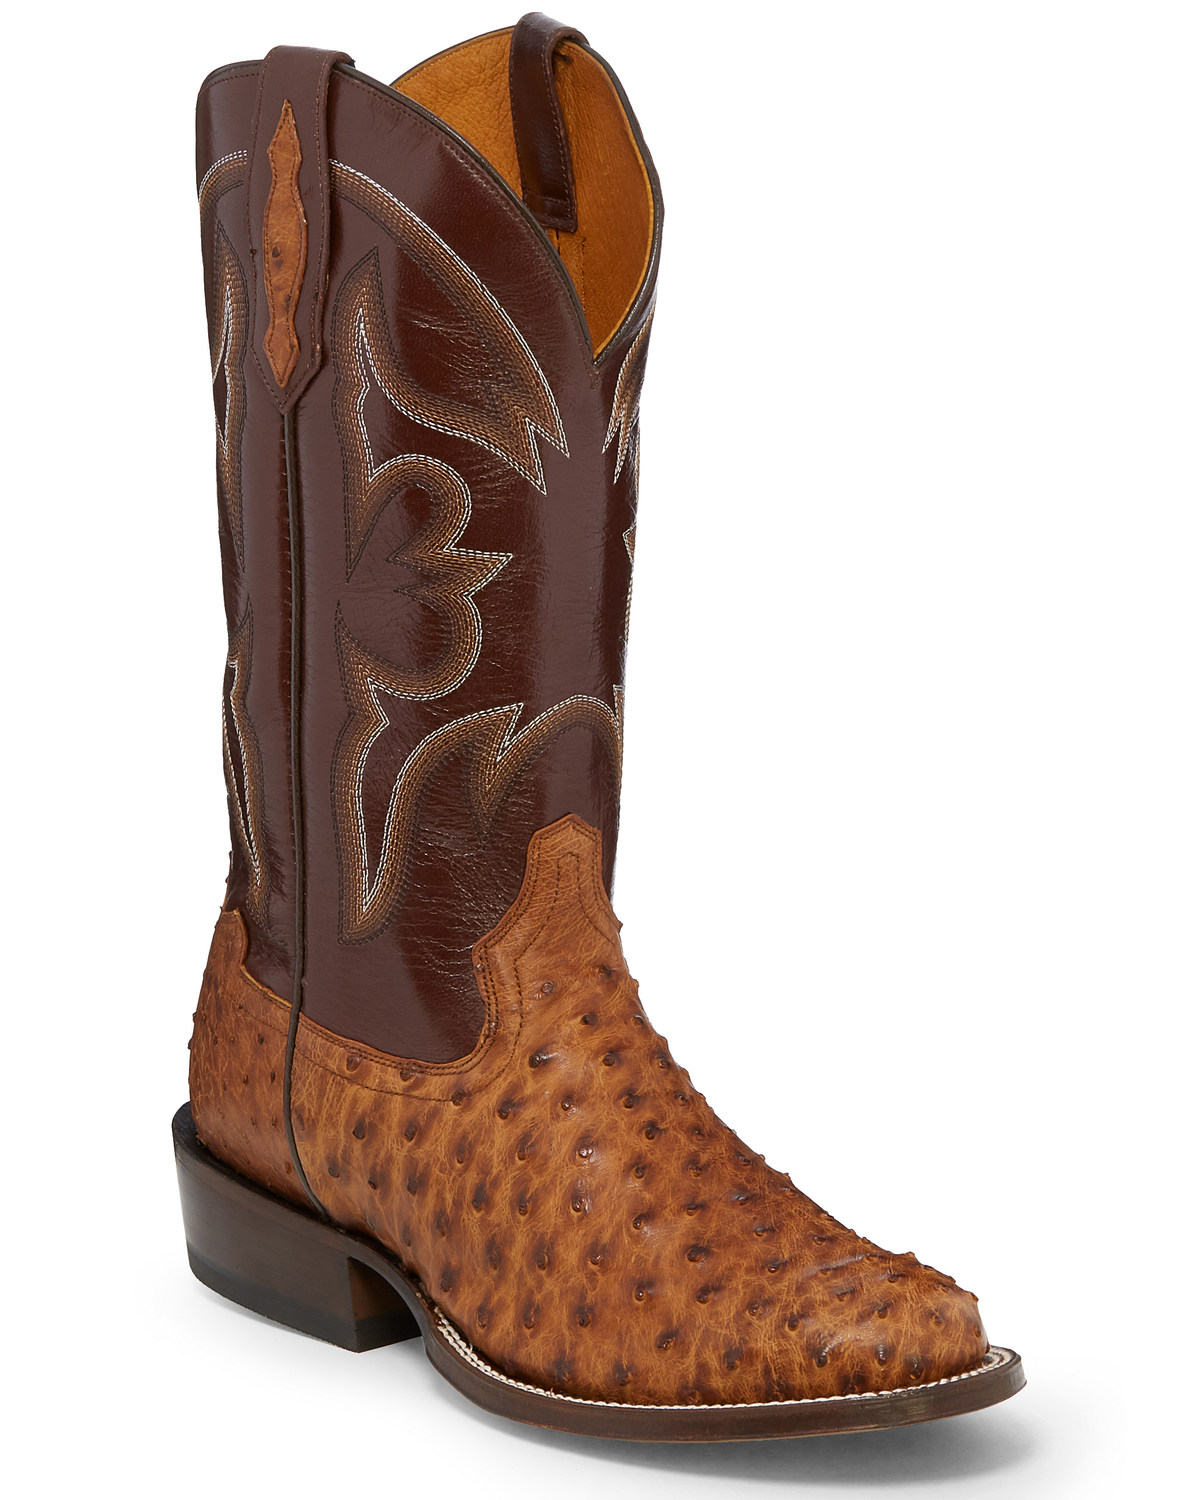 77c61723cb0 Tony Lama Men's Ronnie Full Quill Ostrich Western Boots - Round Toe